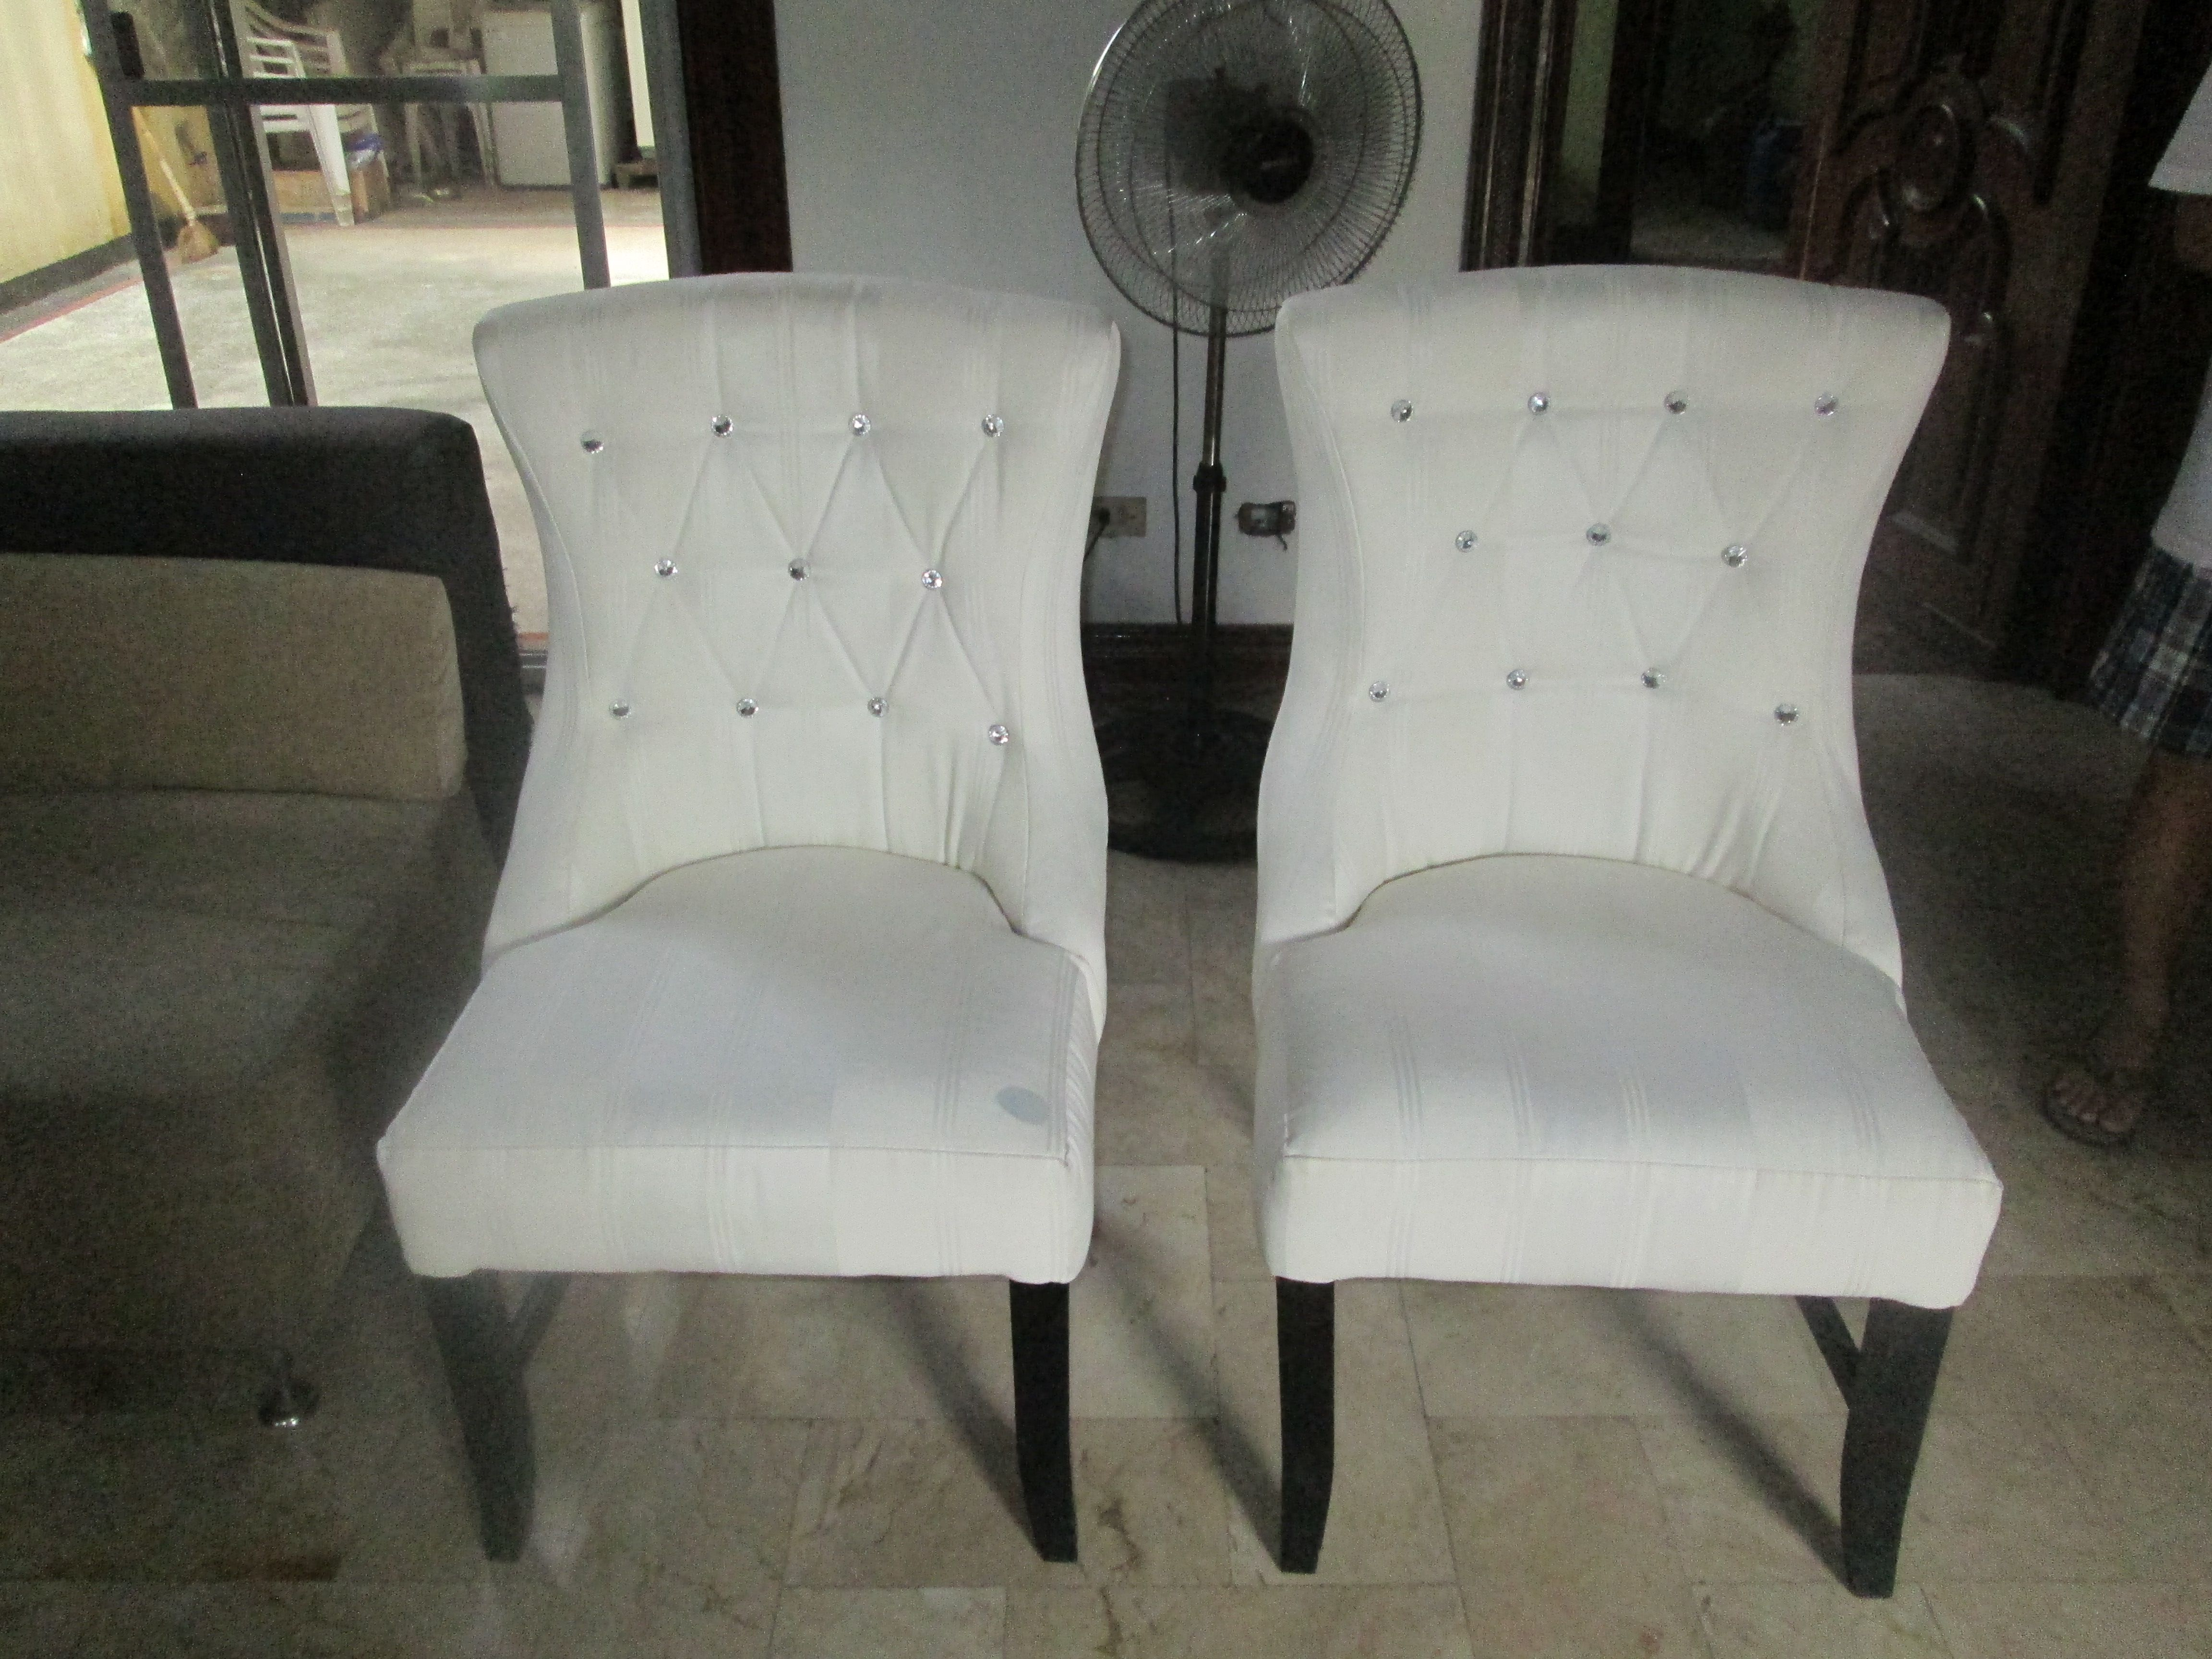 Wondrous Re Upholstery Of High Back Accent Chair Two 2 Pieces Bralicious Painted Fabric Chair Ideas Braliciousco